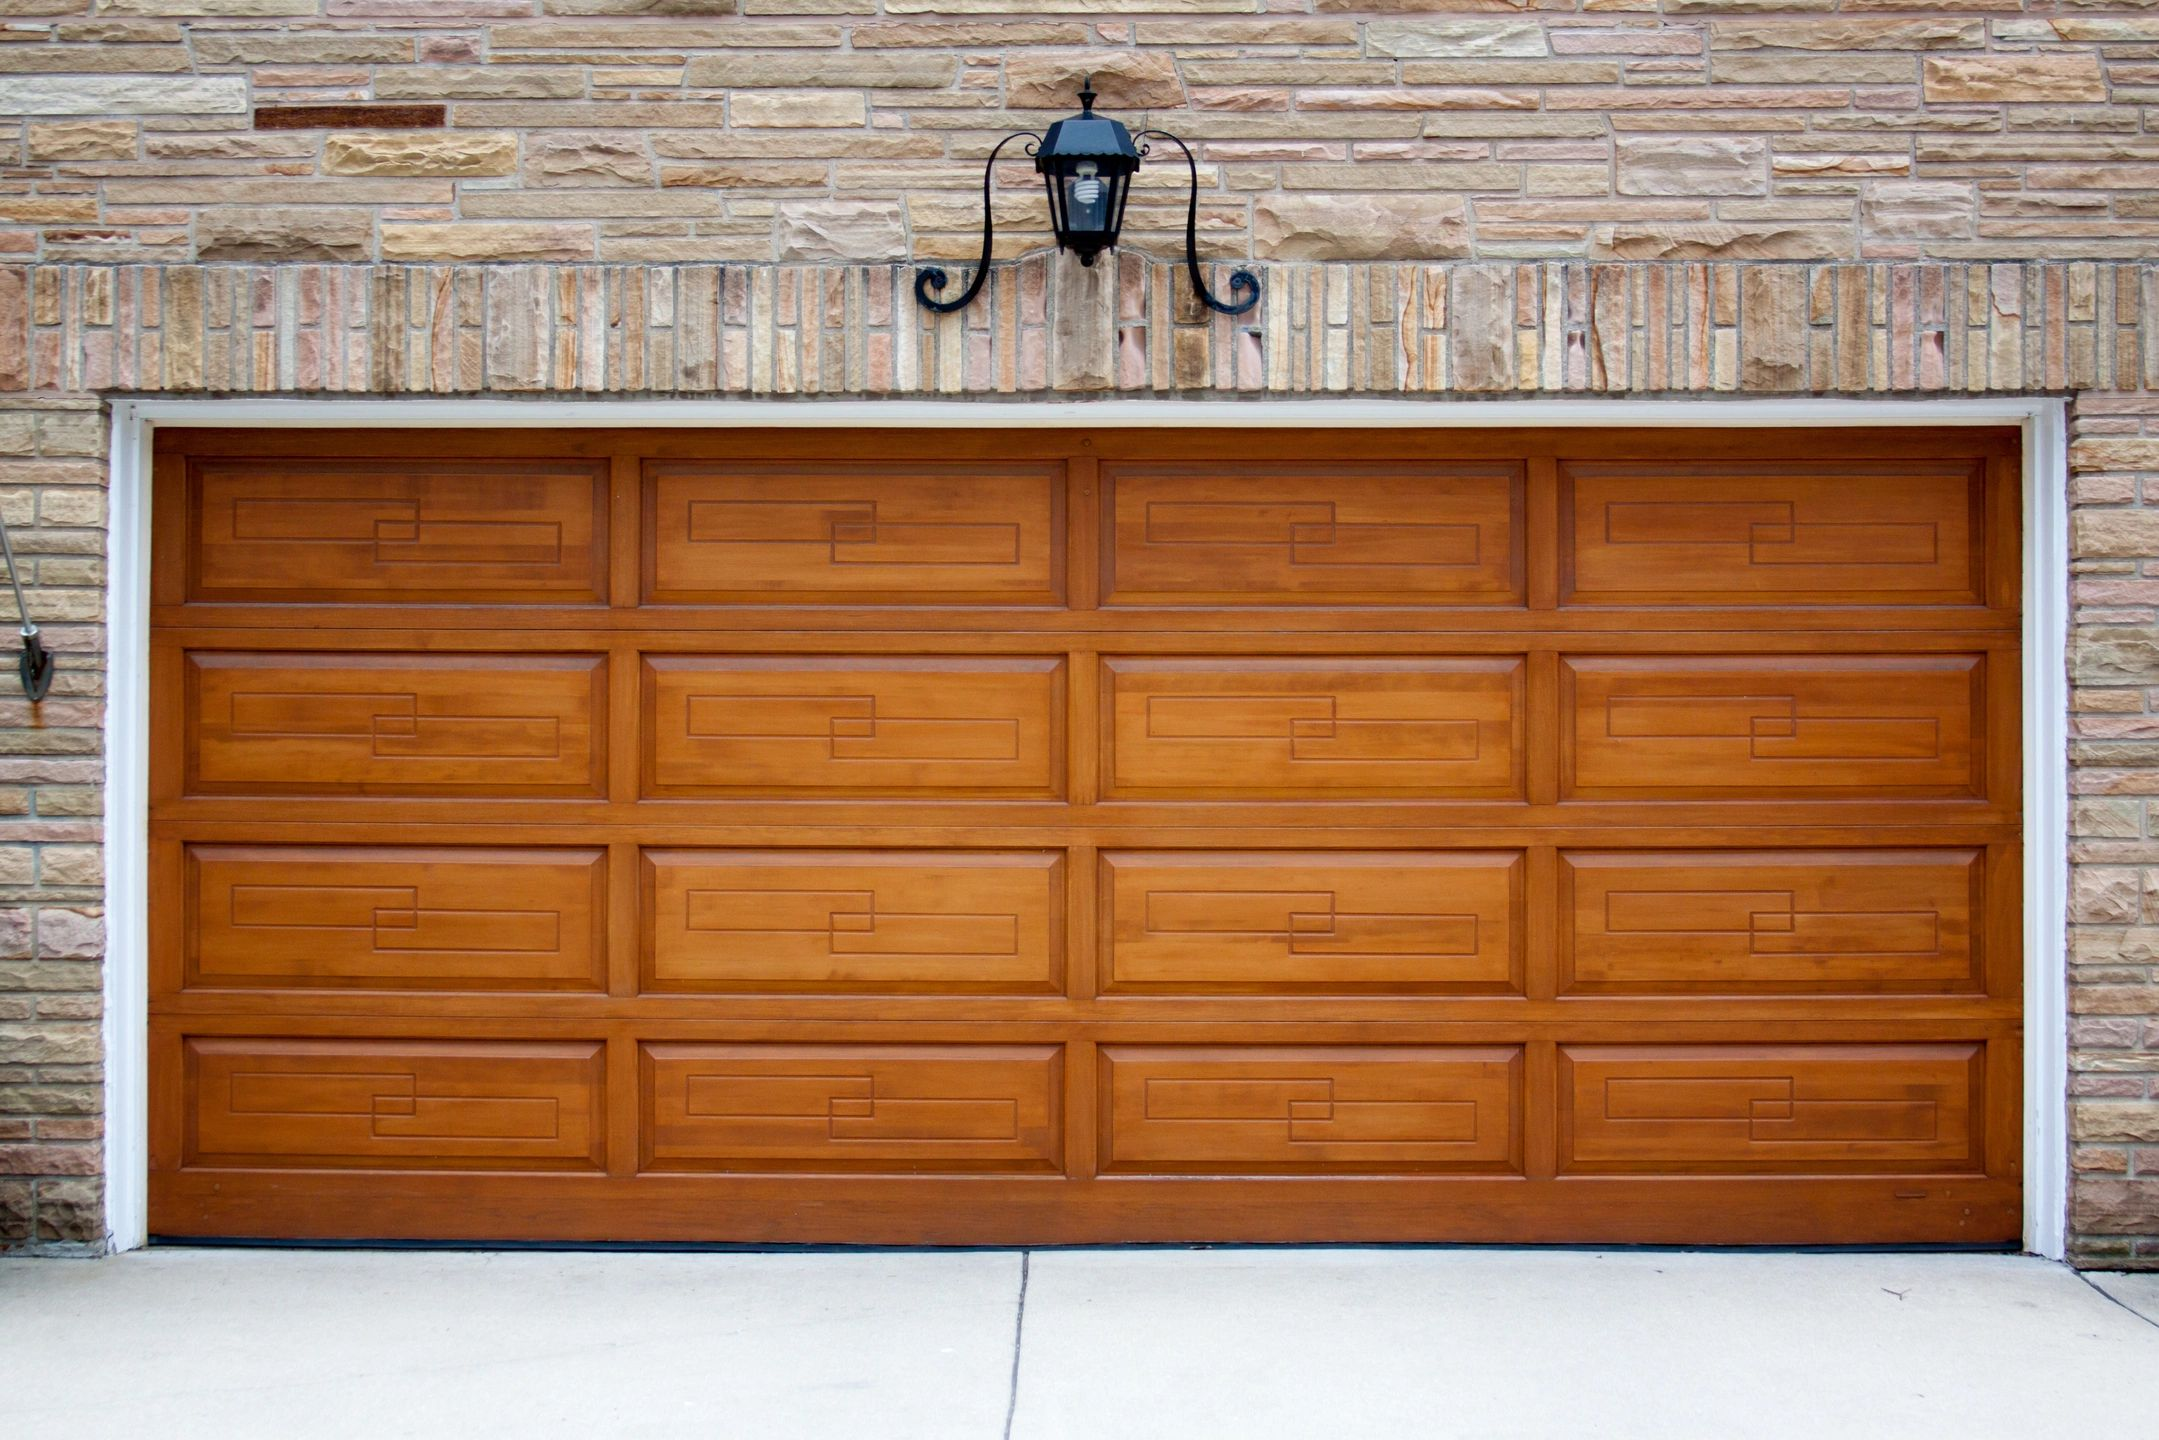 The Best Type of Lubricant to Use on A Garage Door